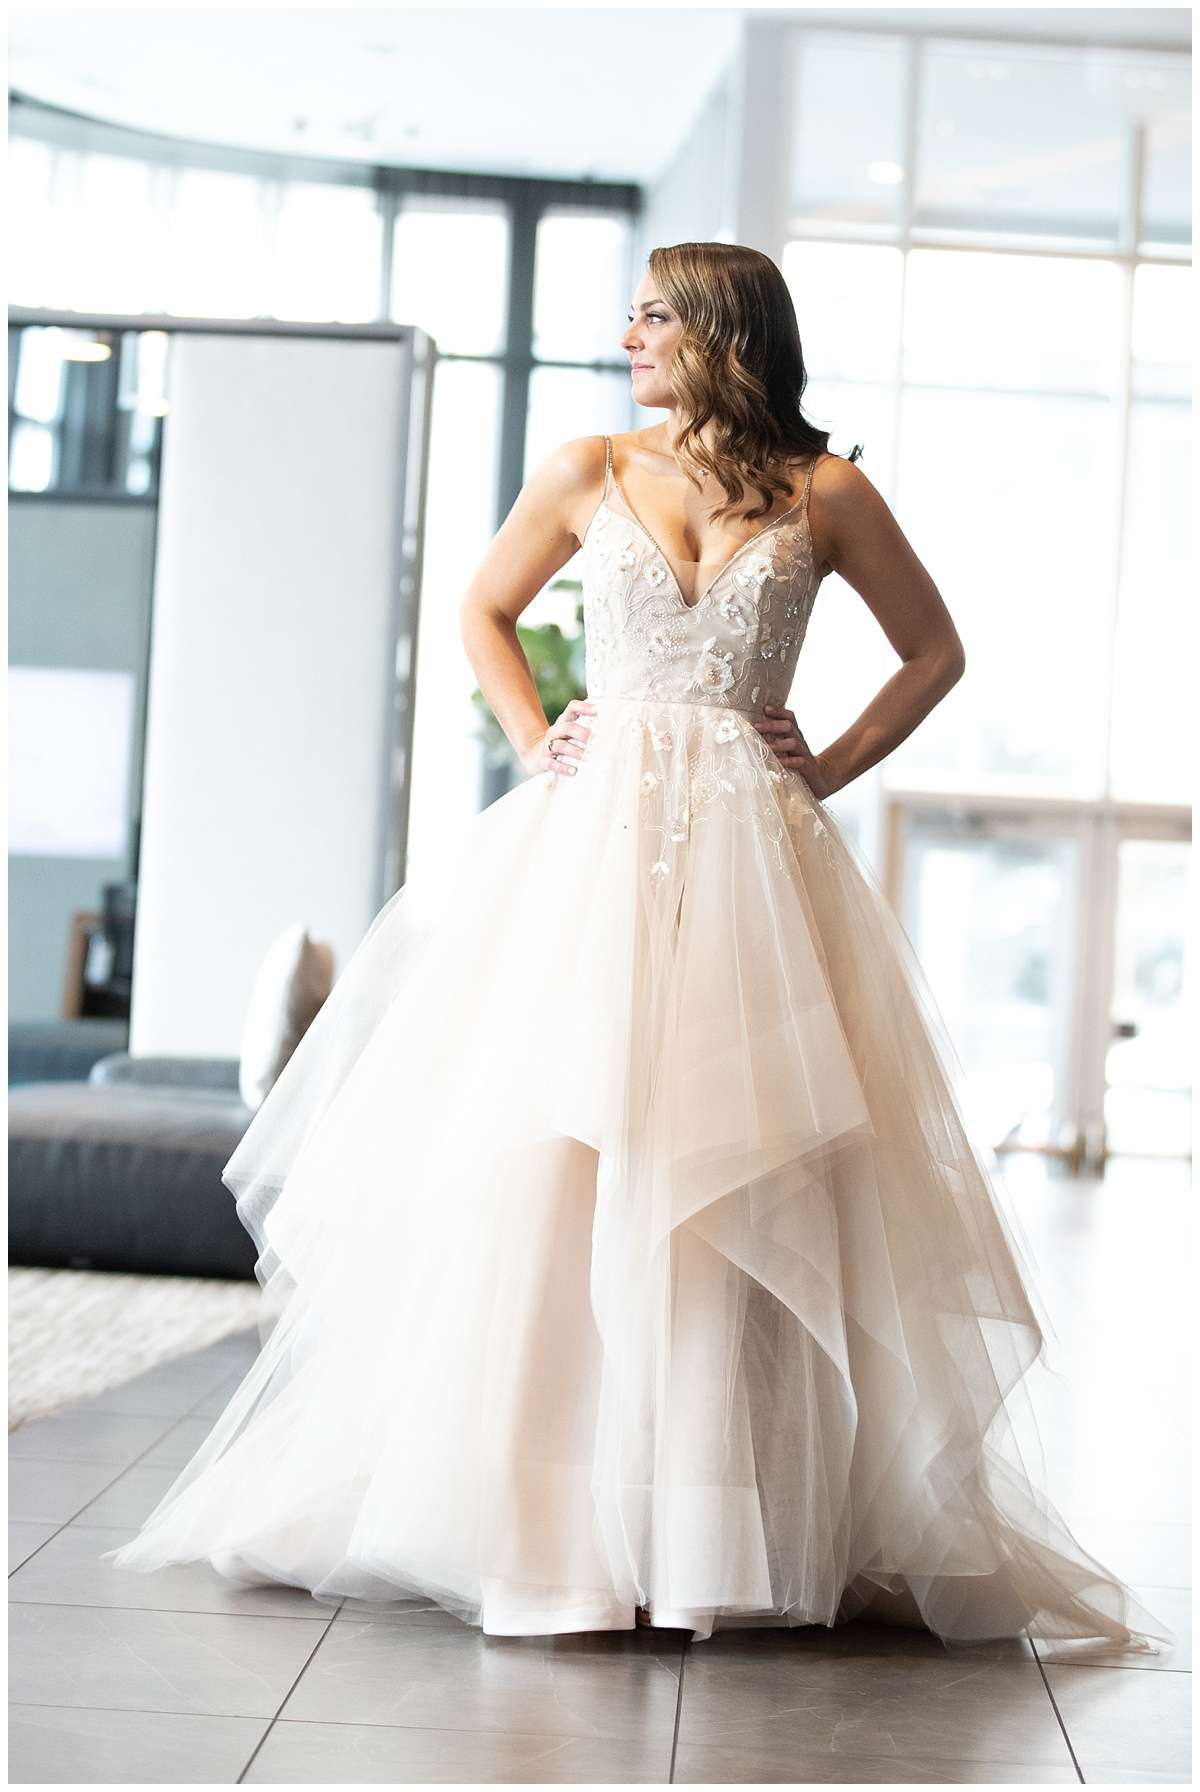 a brunette bride wearing a tulle ballgown in a bright space filled with natural light